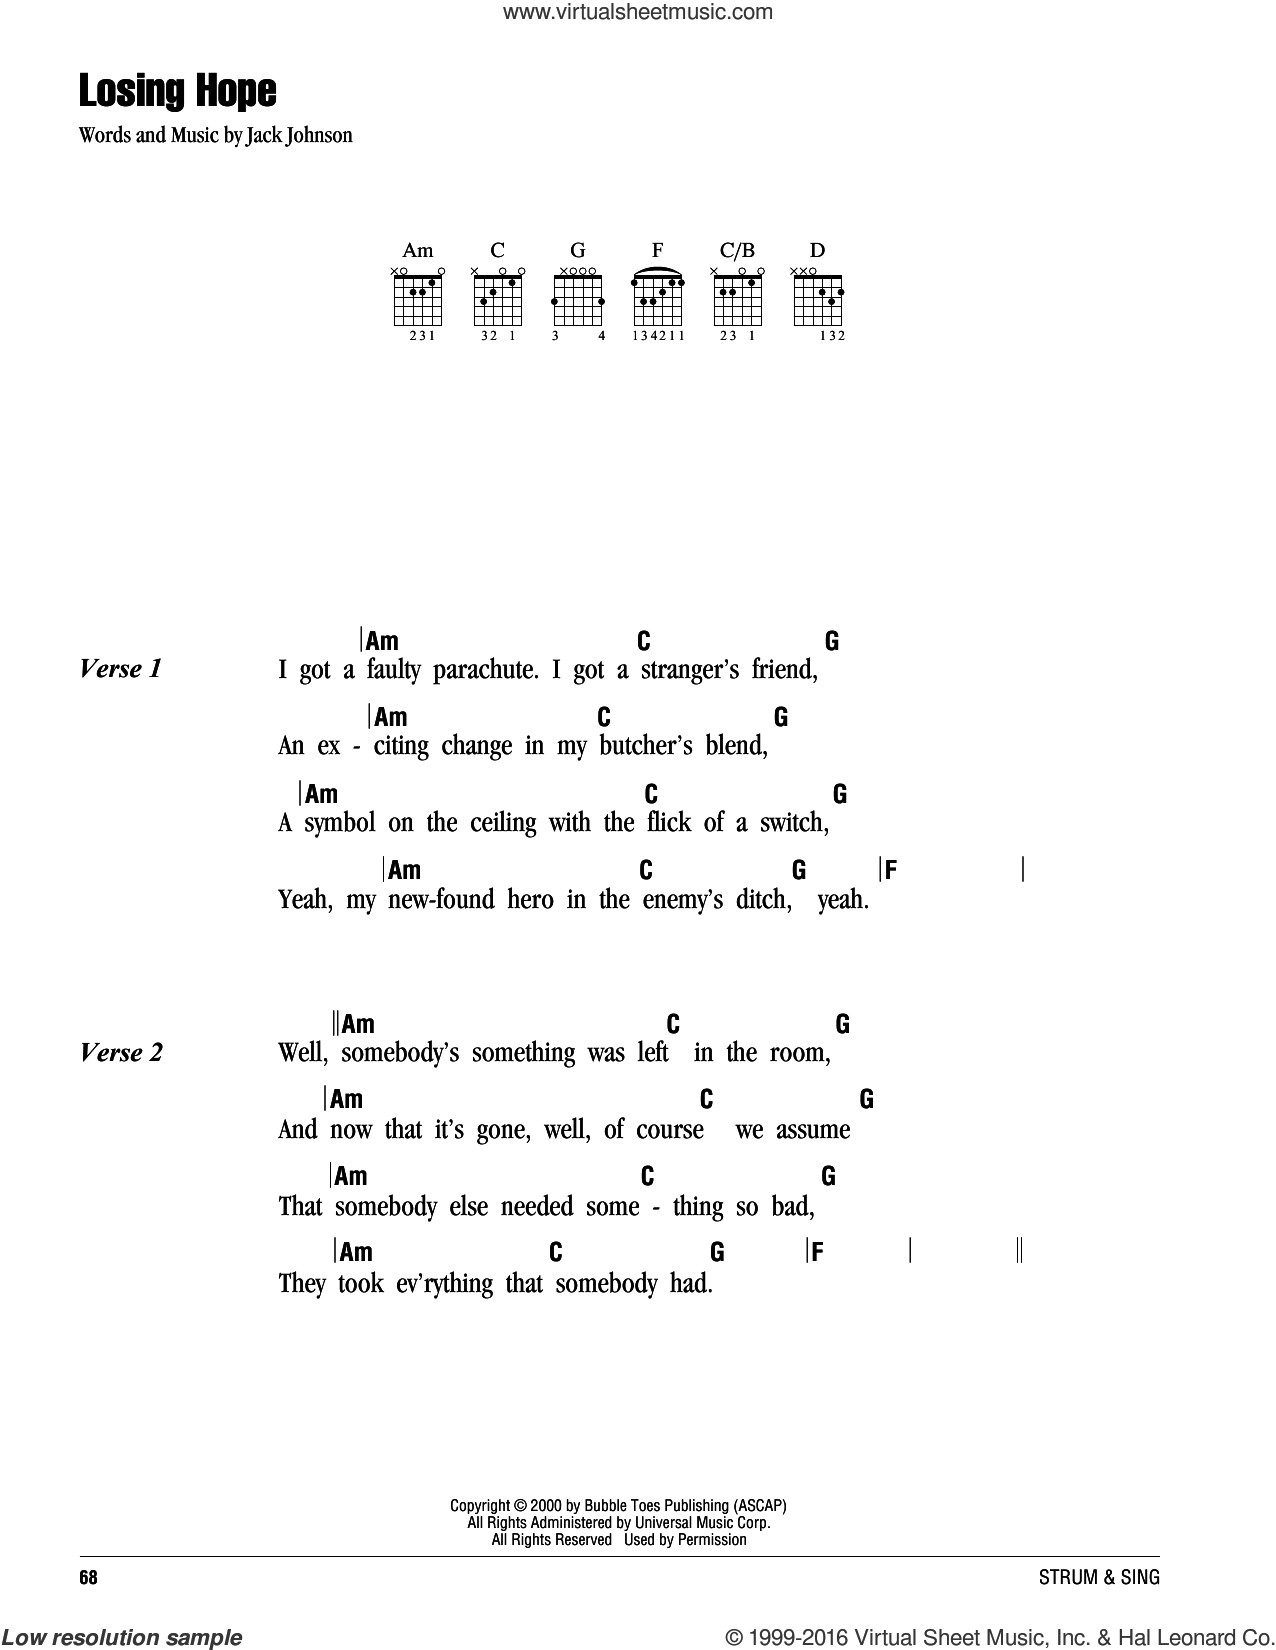 Losing Hope sheet music for guitar (chords) by Jack Johnson. Score Image Preview.